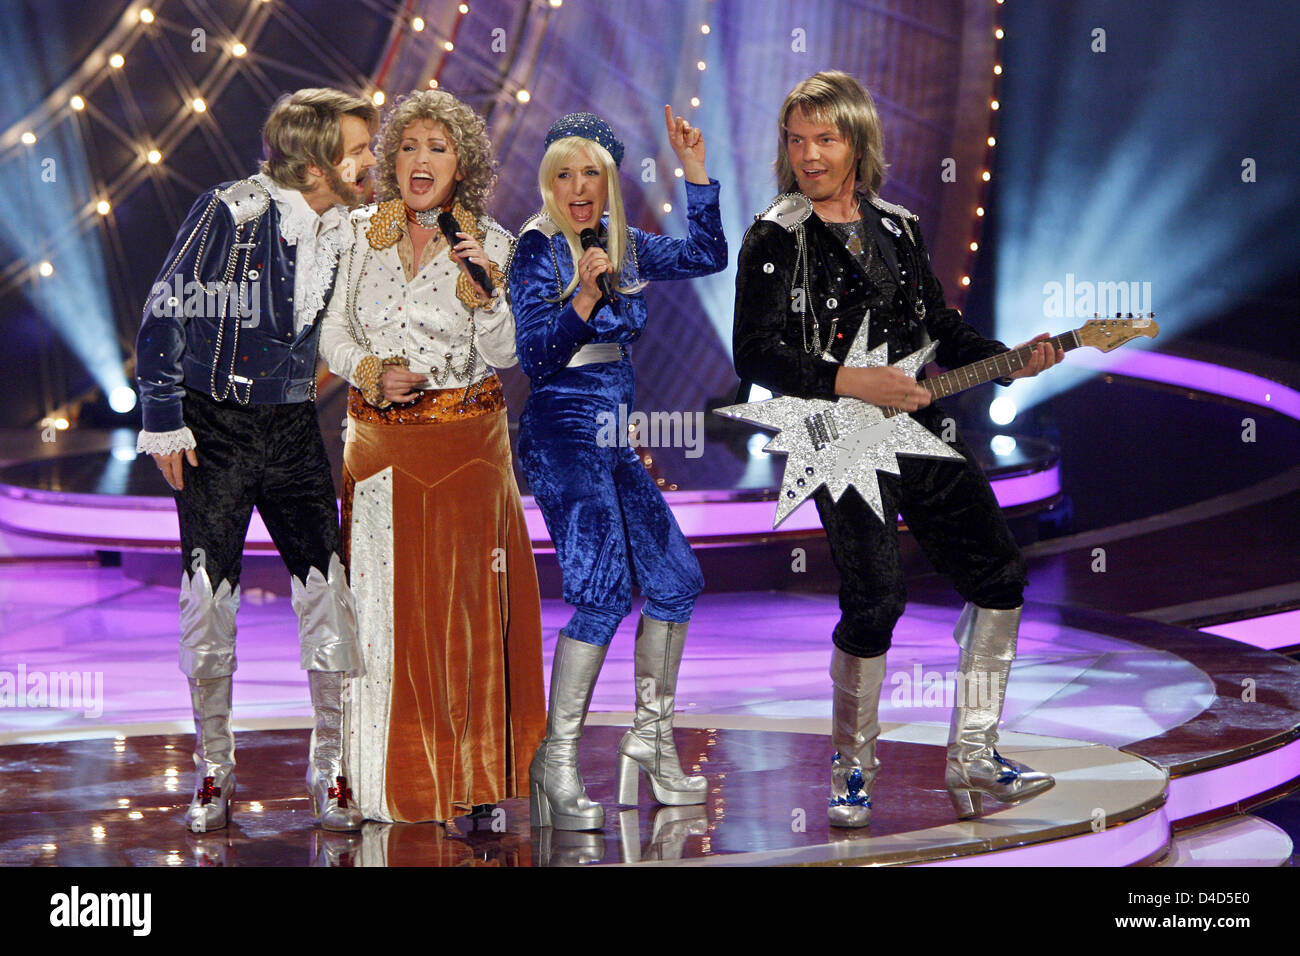 Dressed as the music group Abba Uwe Busse (L-R), Ute Freudenberg, Stefanie Hertel and her husband Stefan Mross perform - Stock Image